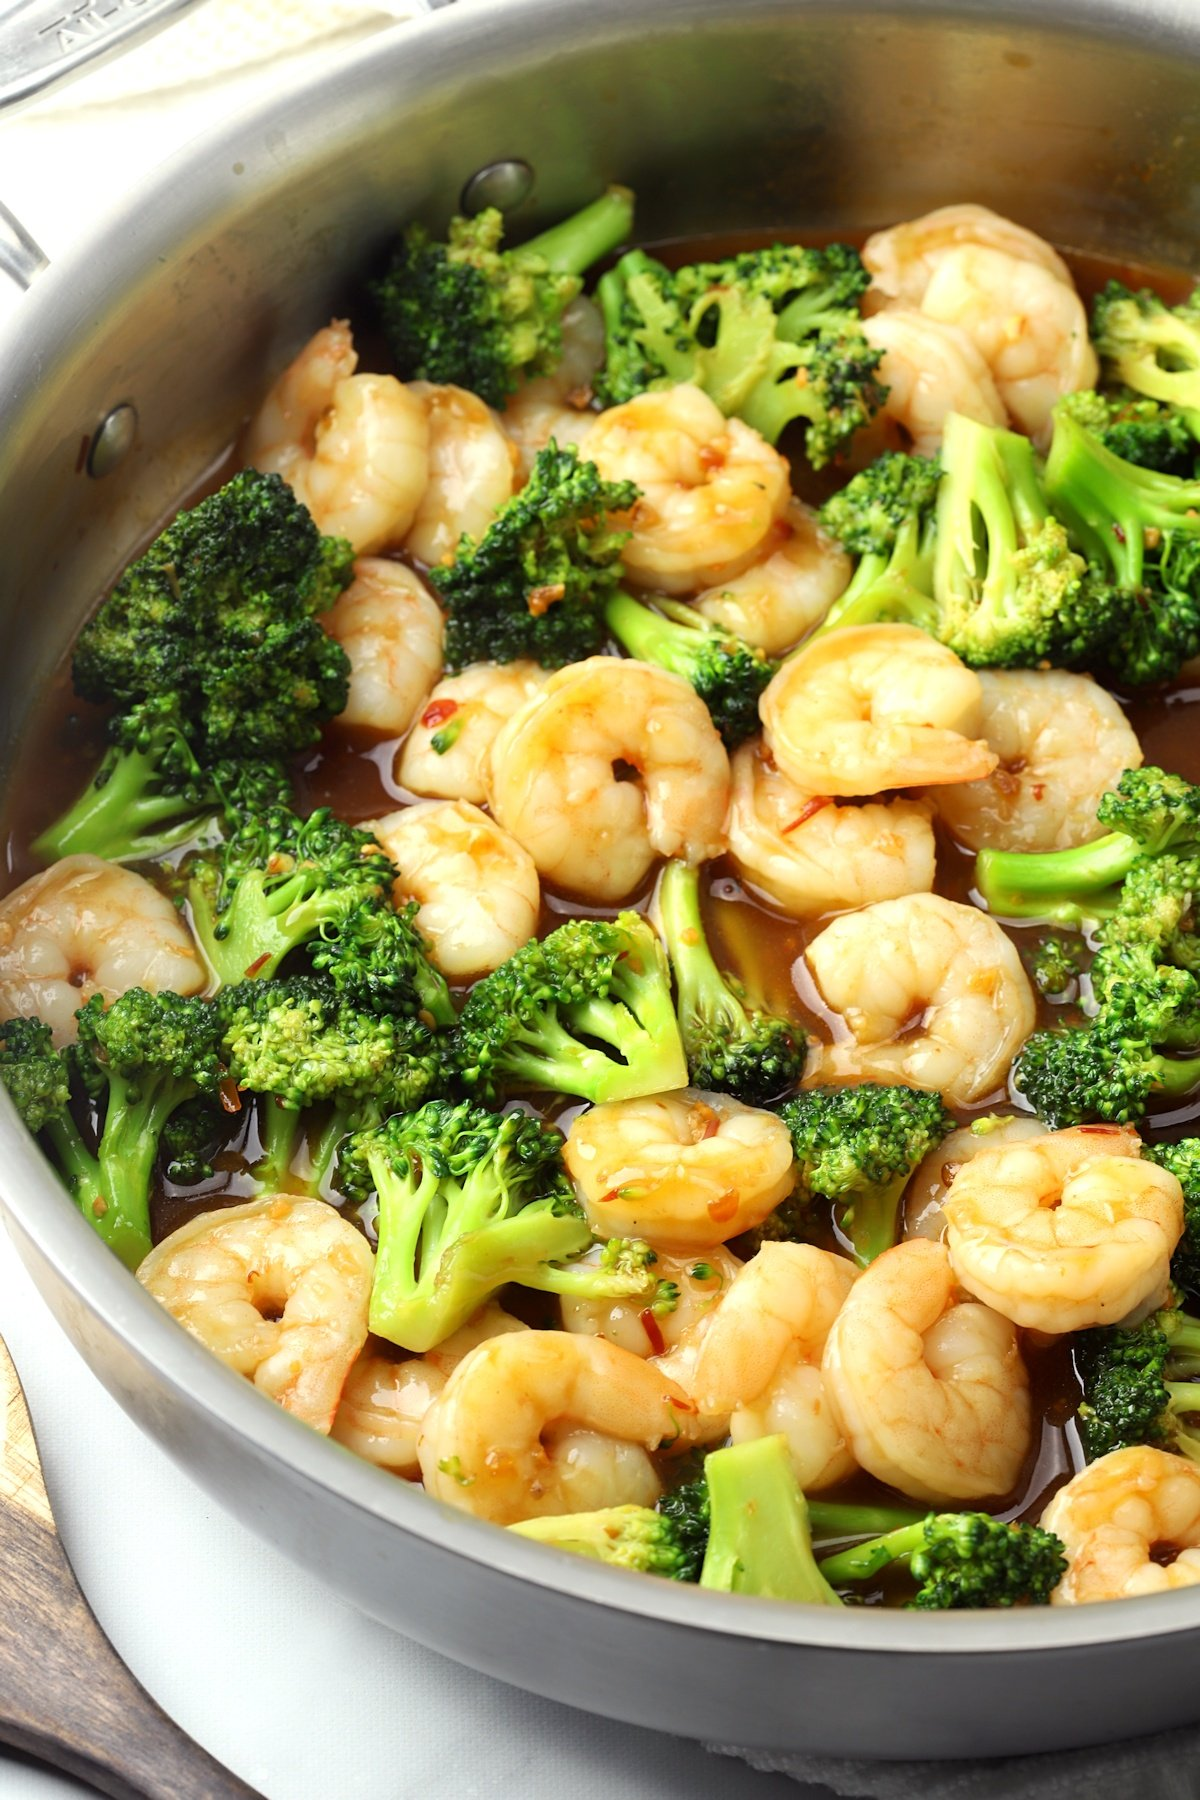 Saute pan filled with shrimp and broccoli.